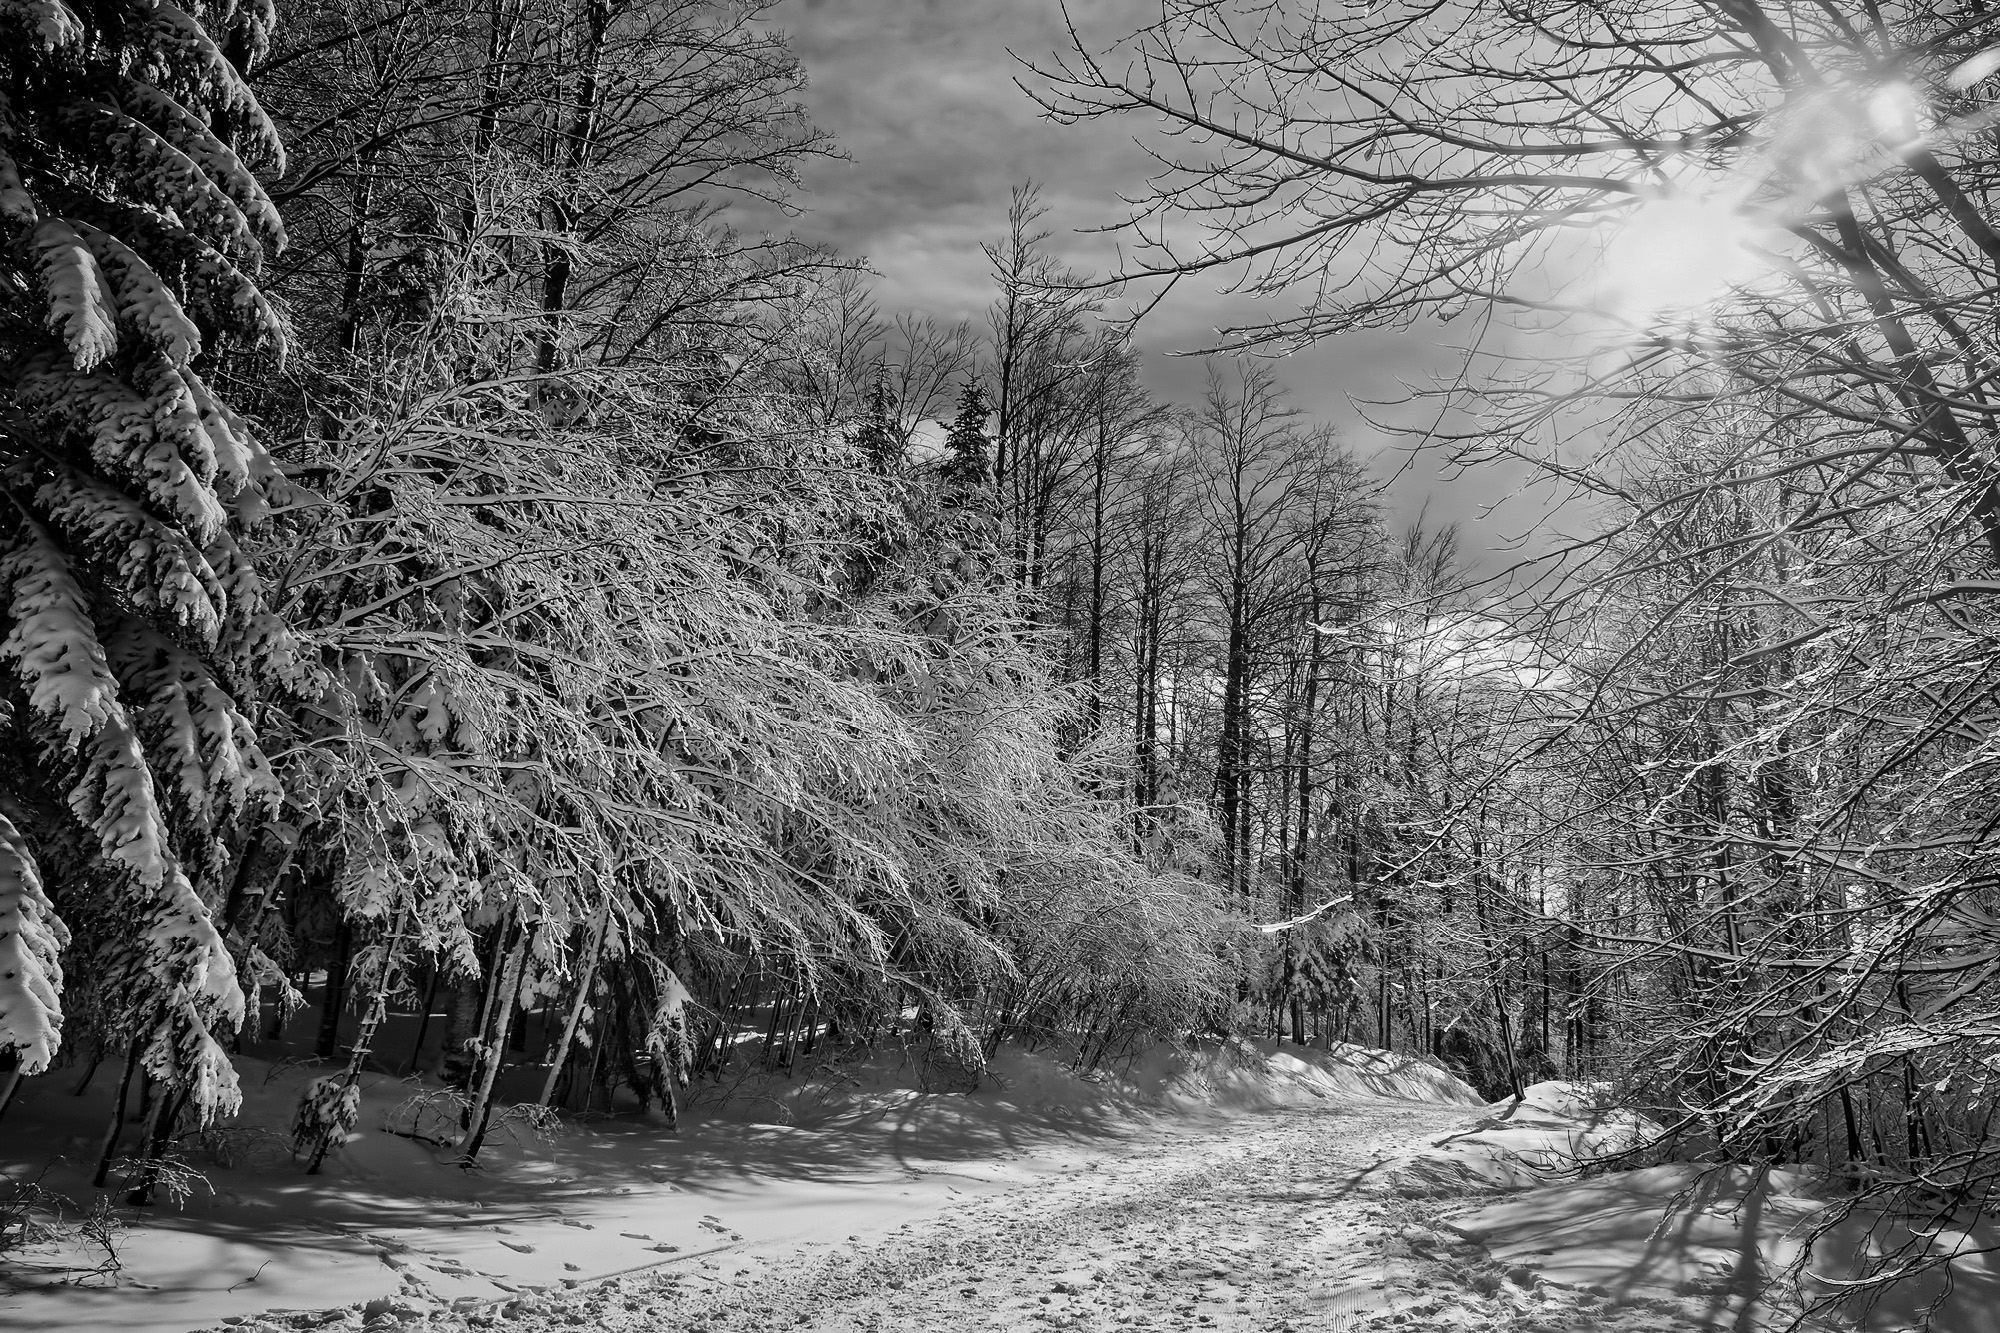 road, Snow, Black, White, Winter, Forest, Nature ... |Winter Forest Black And White